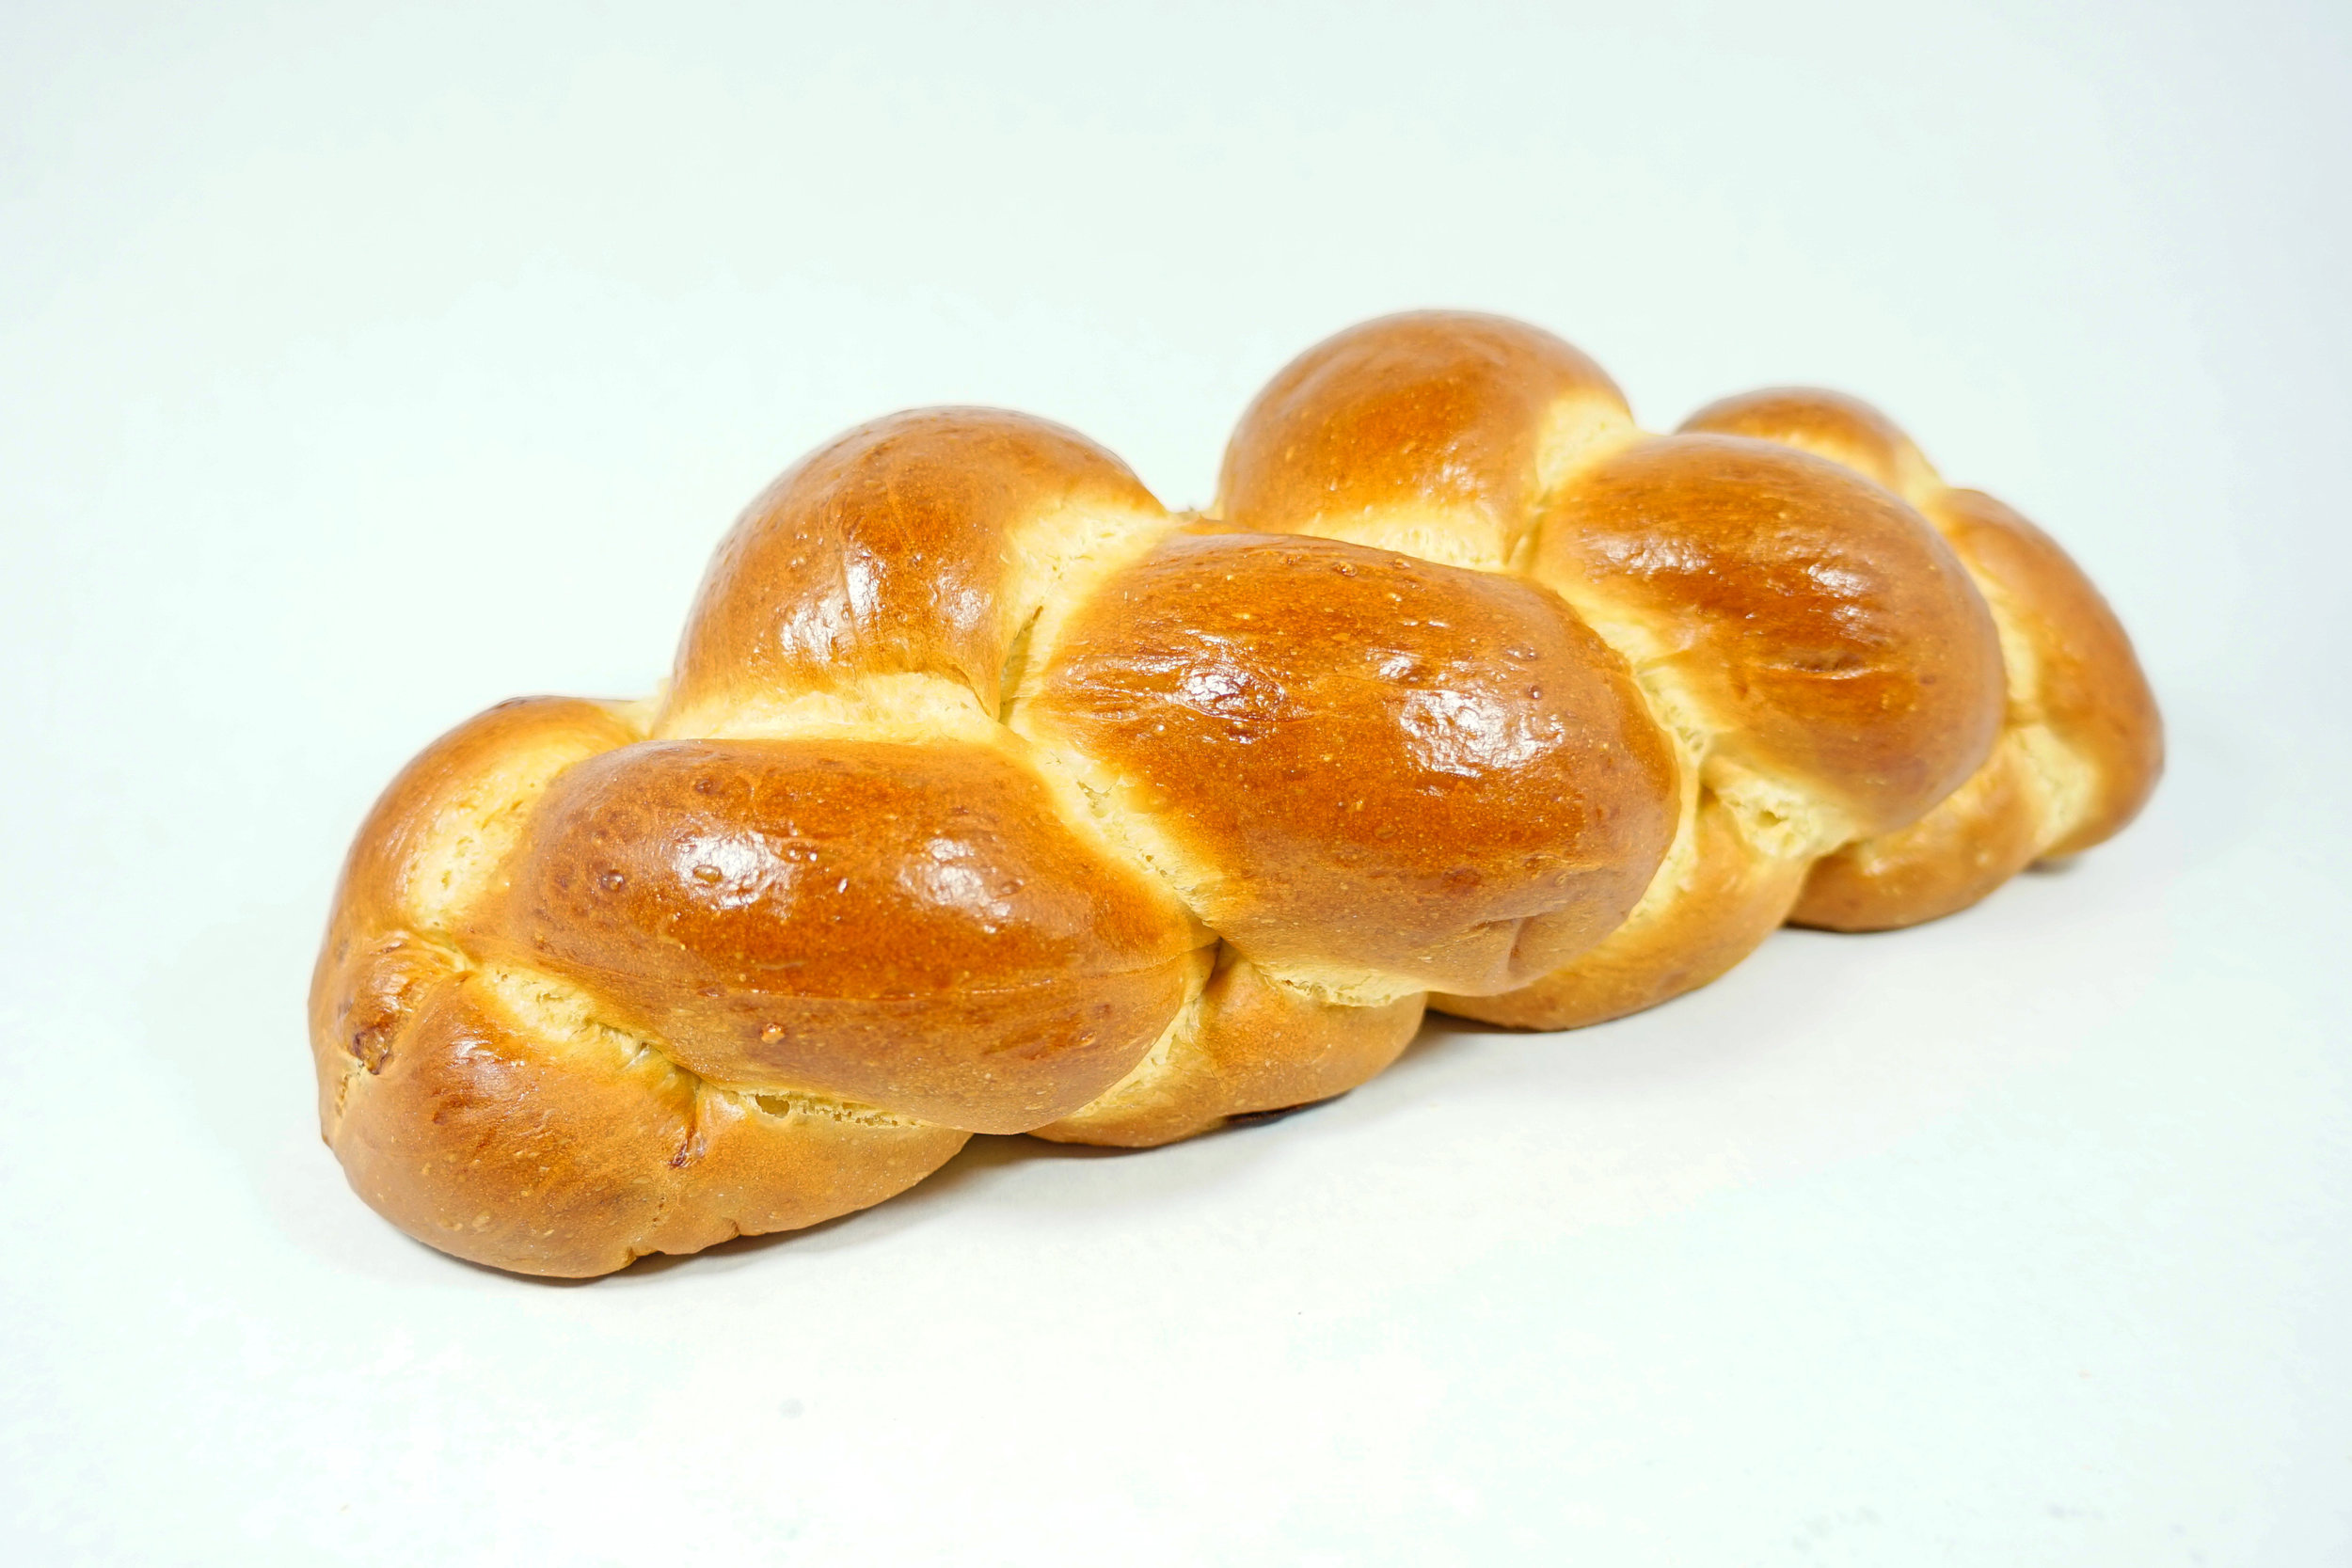 Challah - Our braided loaf topped with sesame, poppy or mixed seeds. You have a choice to order raisins baked inside. Makes a great French toast or sandwiches.*Every Friday